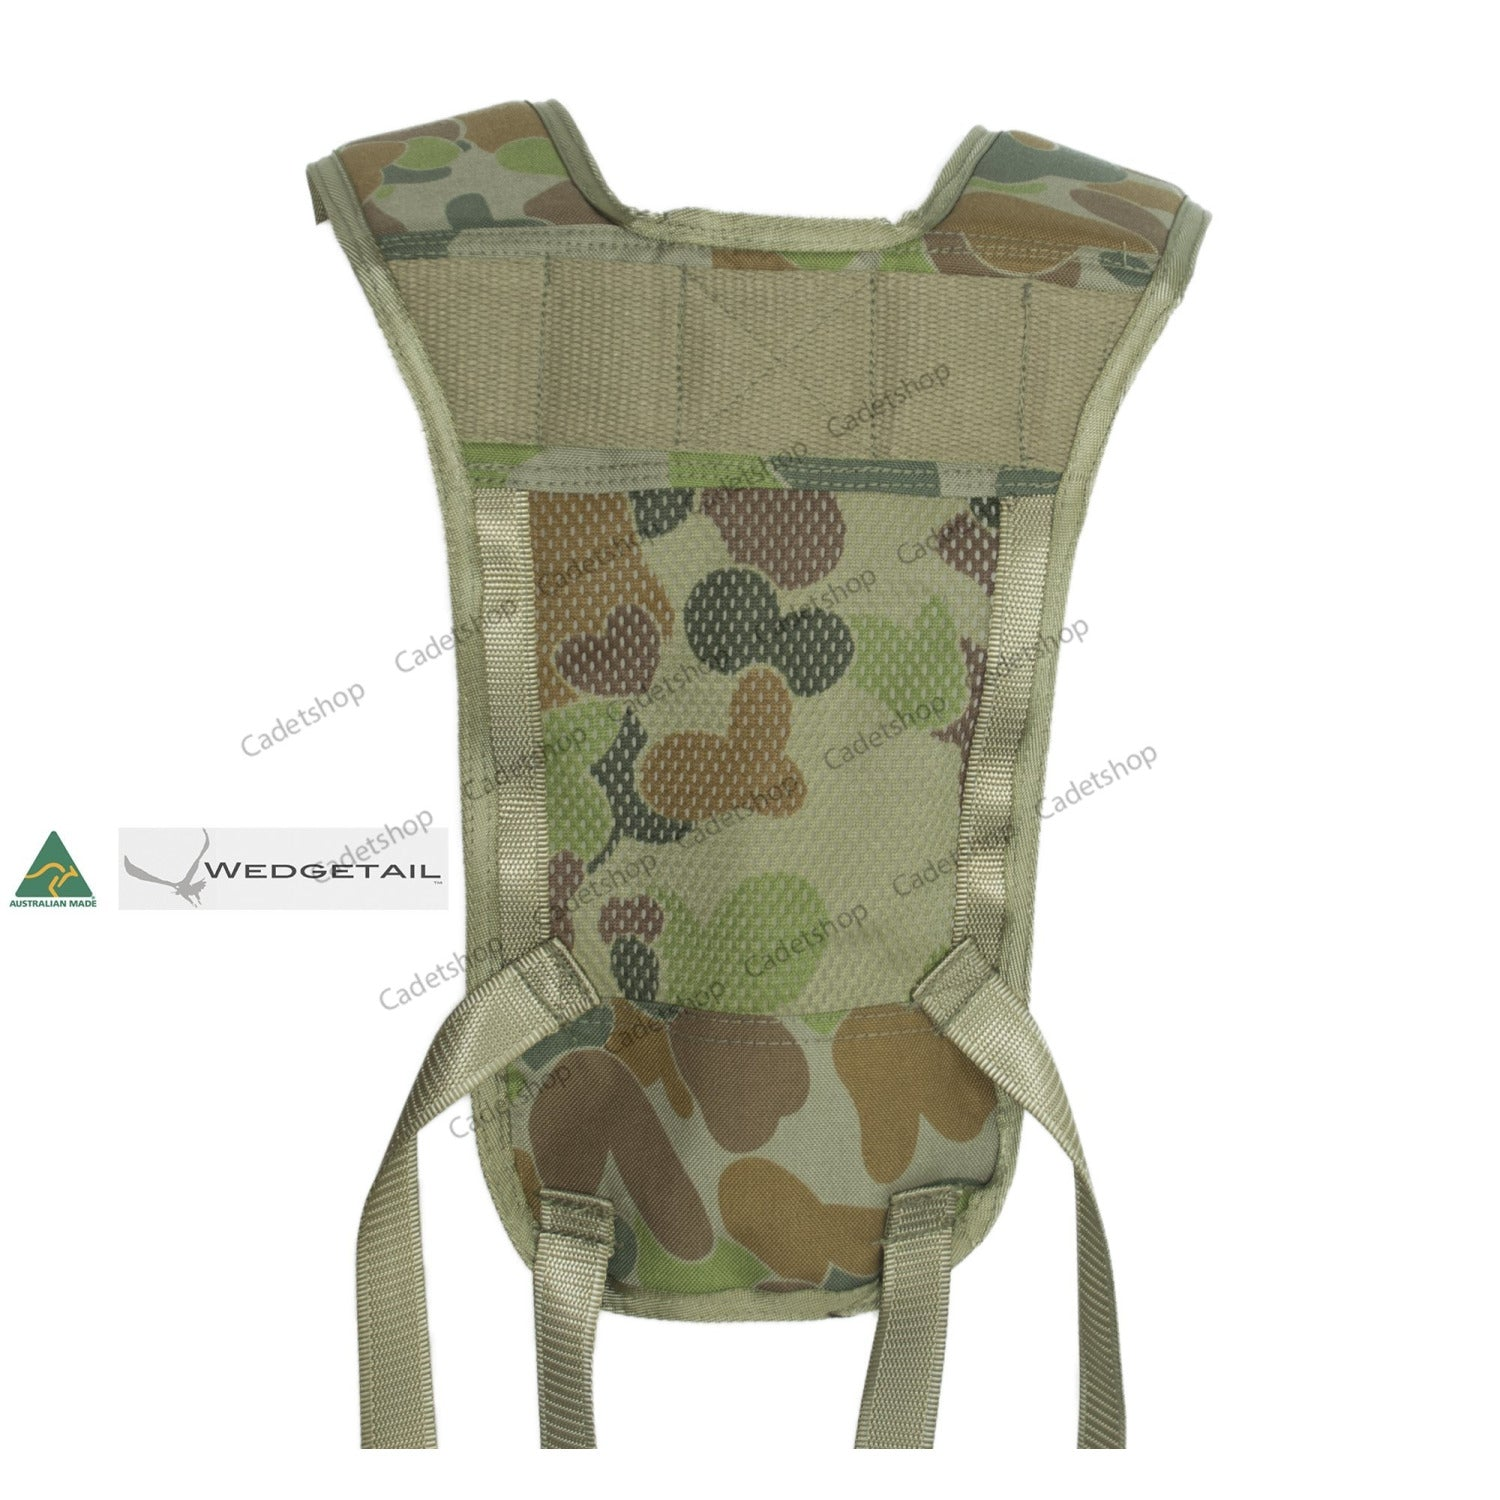 Wedgetail Military H Harness - Cadetshop